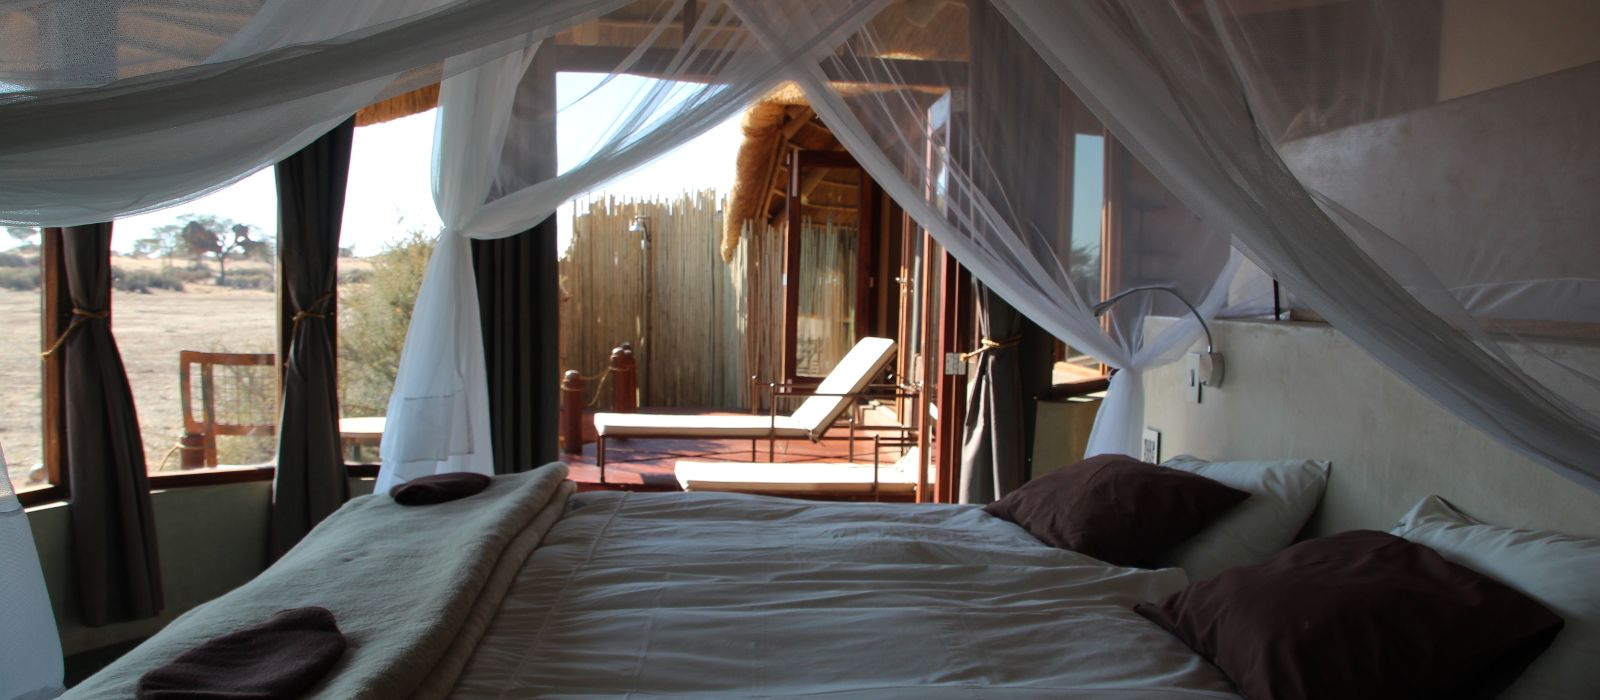 Hotel Kalahari Red Dunes Lodge South Africa